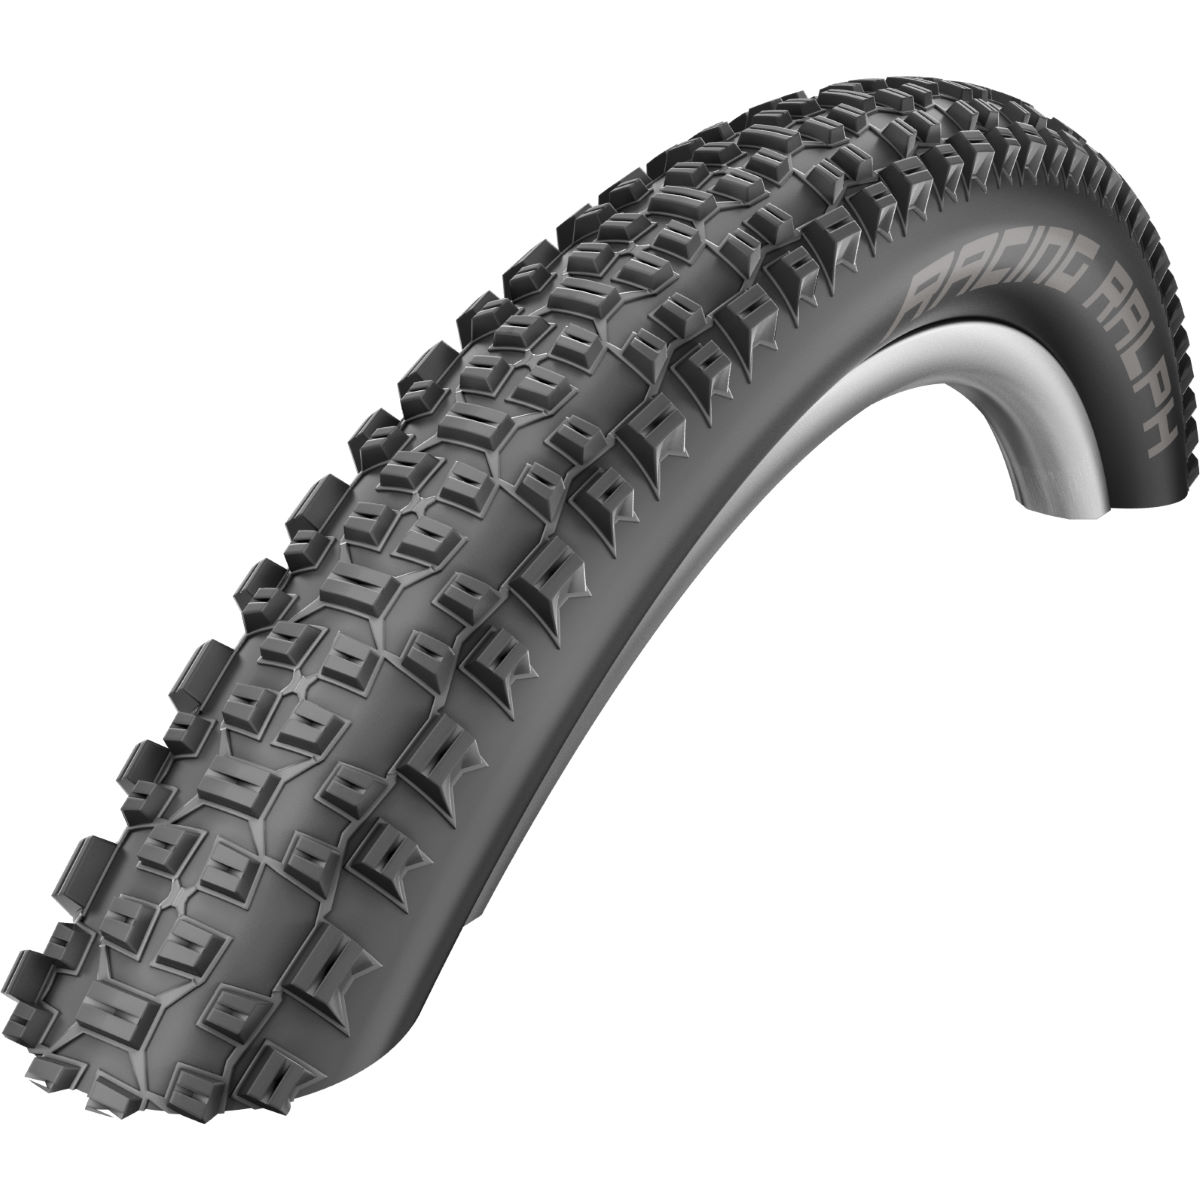 Pneu VTT Schwalbe Racing Ralph Addix Performance - 2.25' 26' Noir